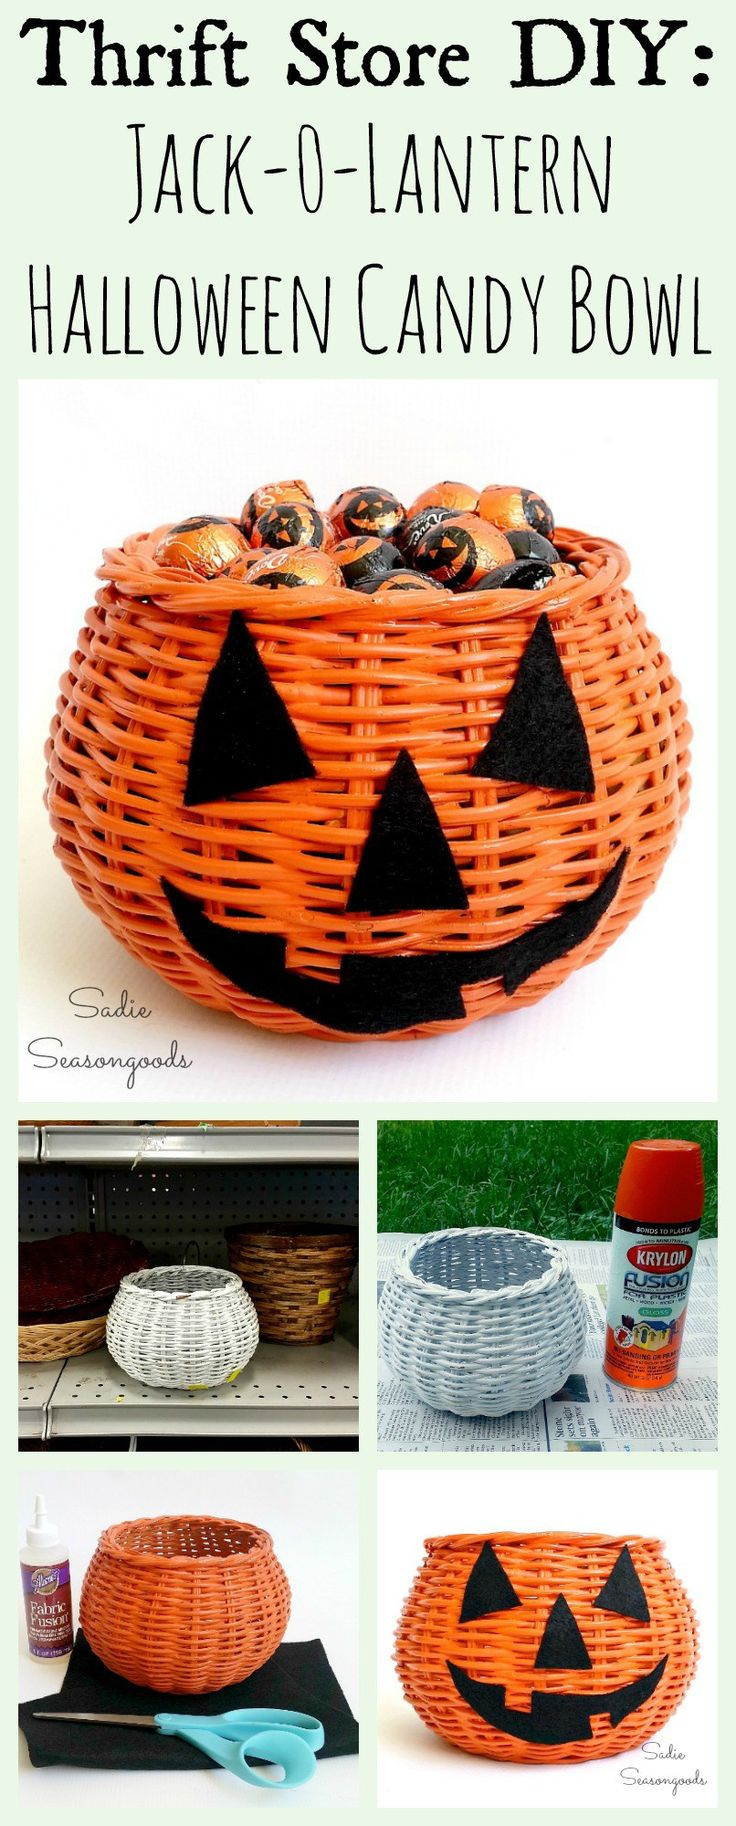 A plain round basket from the thrift store is ideal for a super easy, super quick, and super inexpensive Halloween craft project! A little orange paint and some black felt, and your basket is repurposed as a darling jack-o-lantern pumpkin candy bowl! A fun and simple way to get into the Halloween spirit at work- with some candy for your favorite colleagues and friends. Great upcycle DIY project by Sadie Seasongoods / www.sadieseasongoods.com